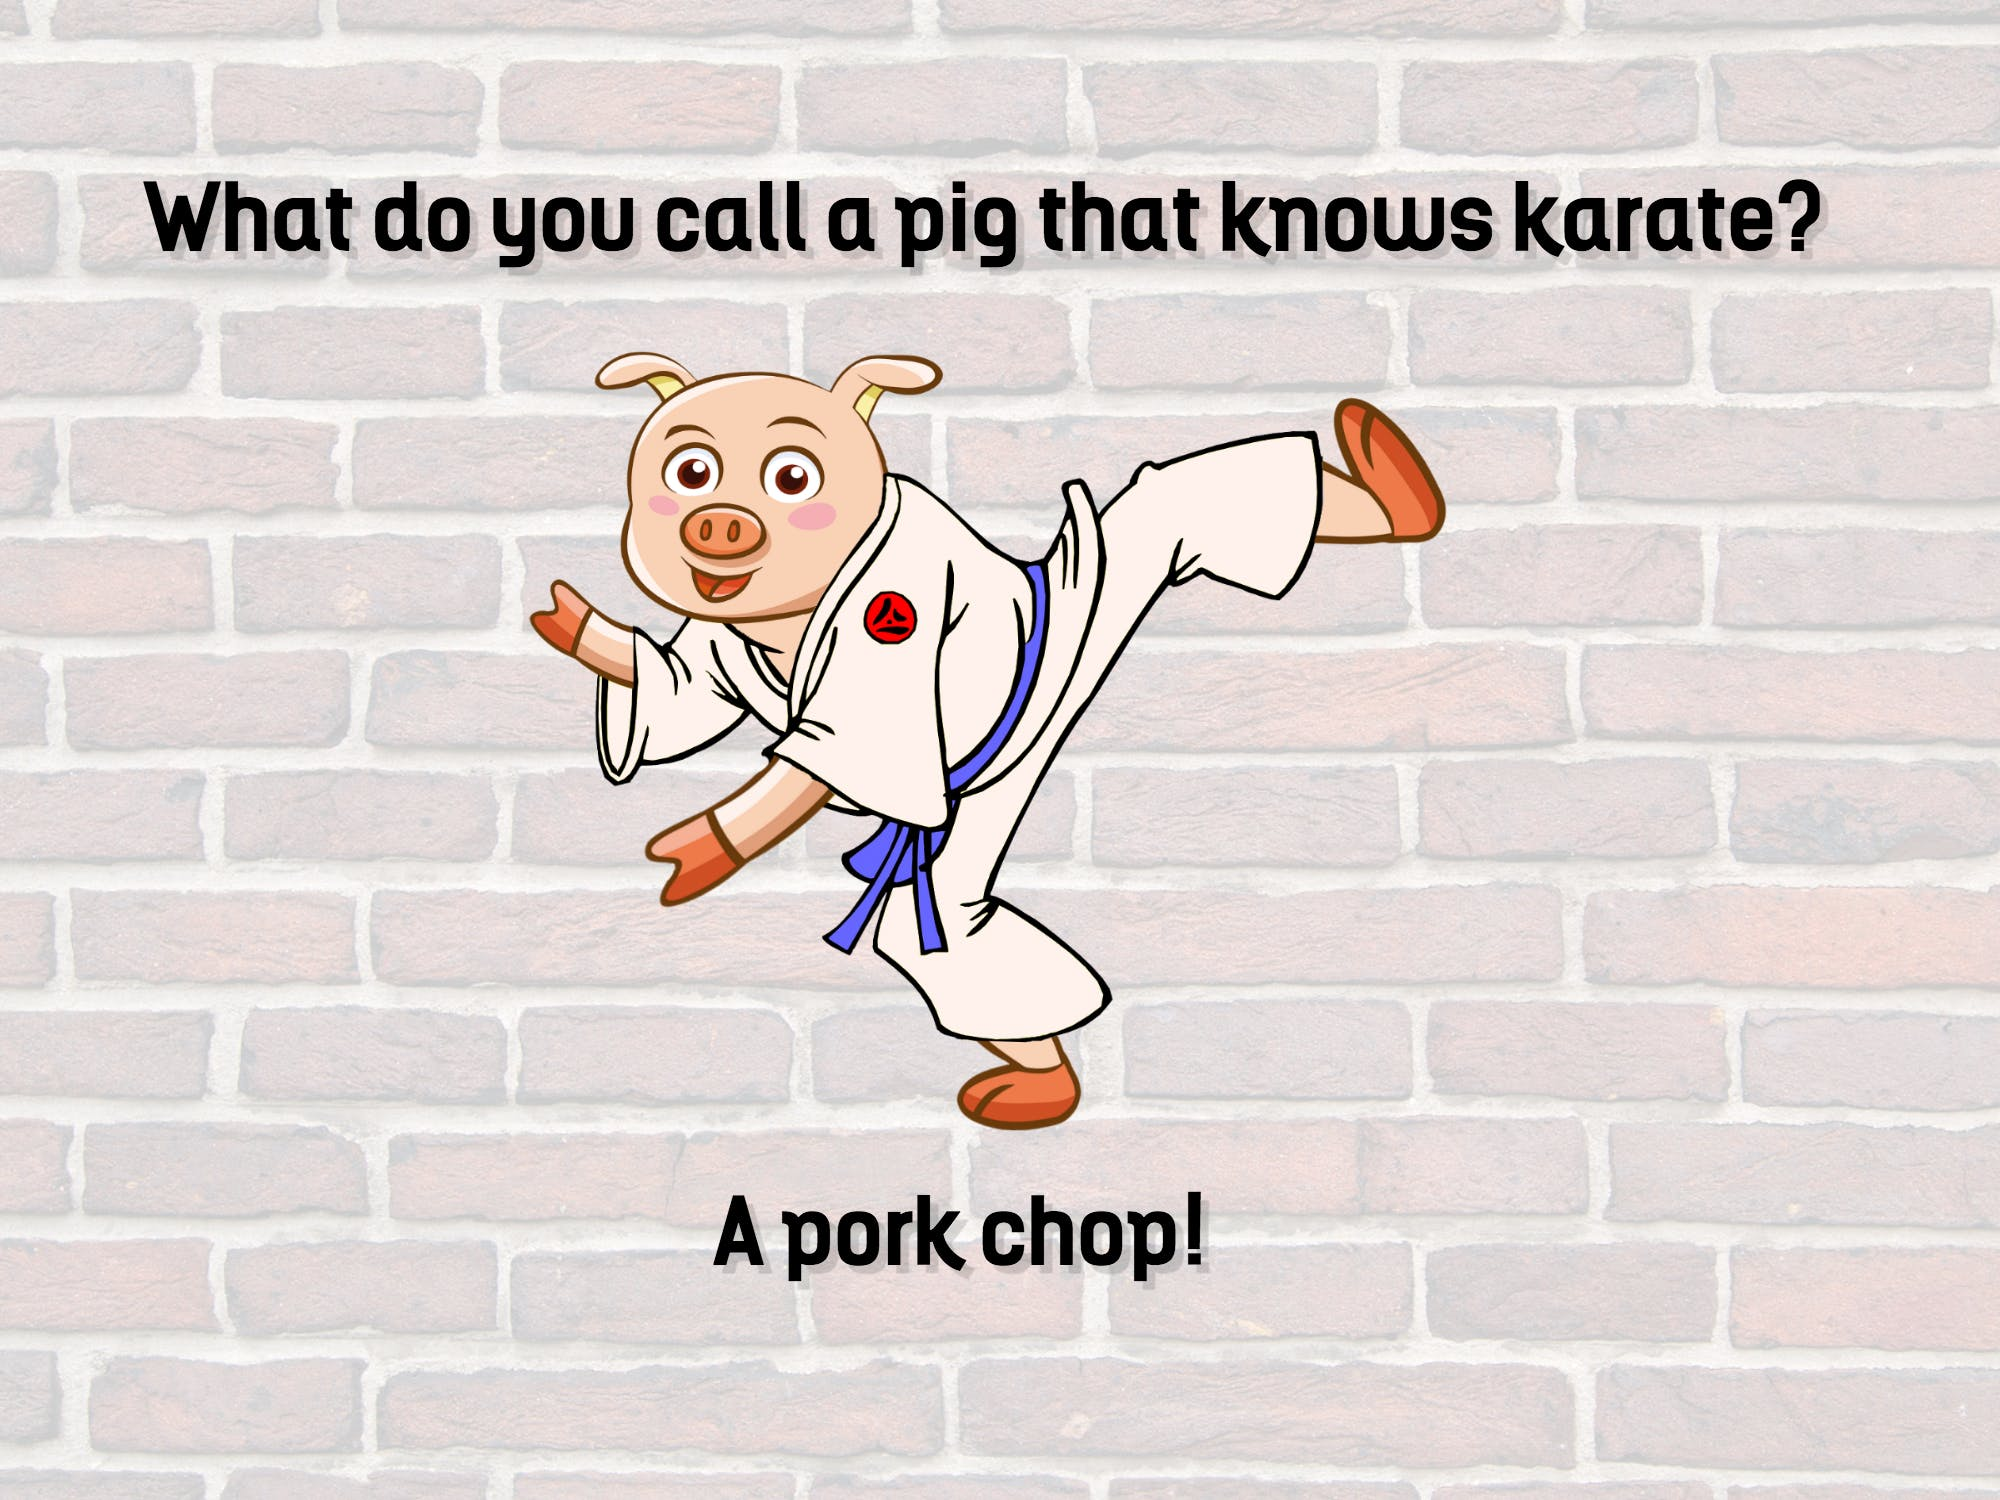 This is a pig who is a keen fan of karate